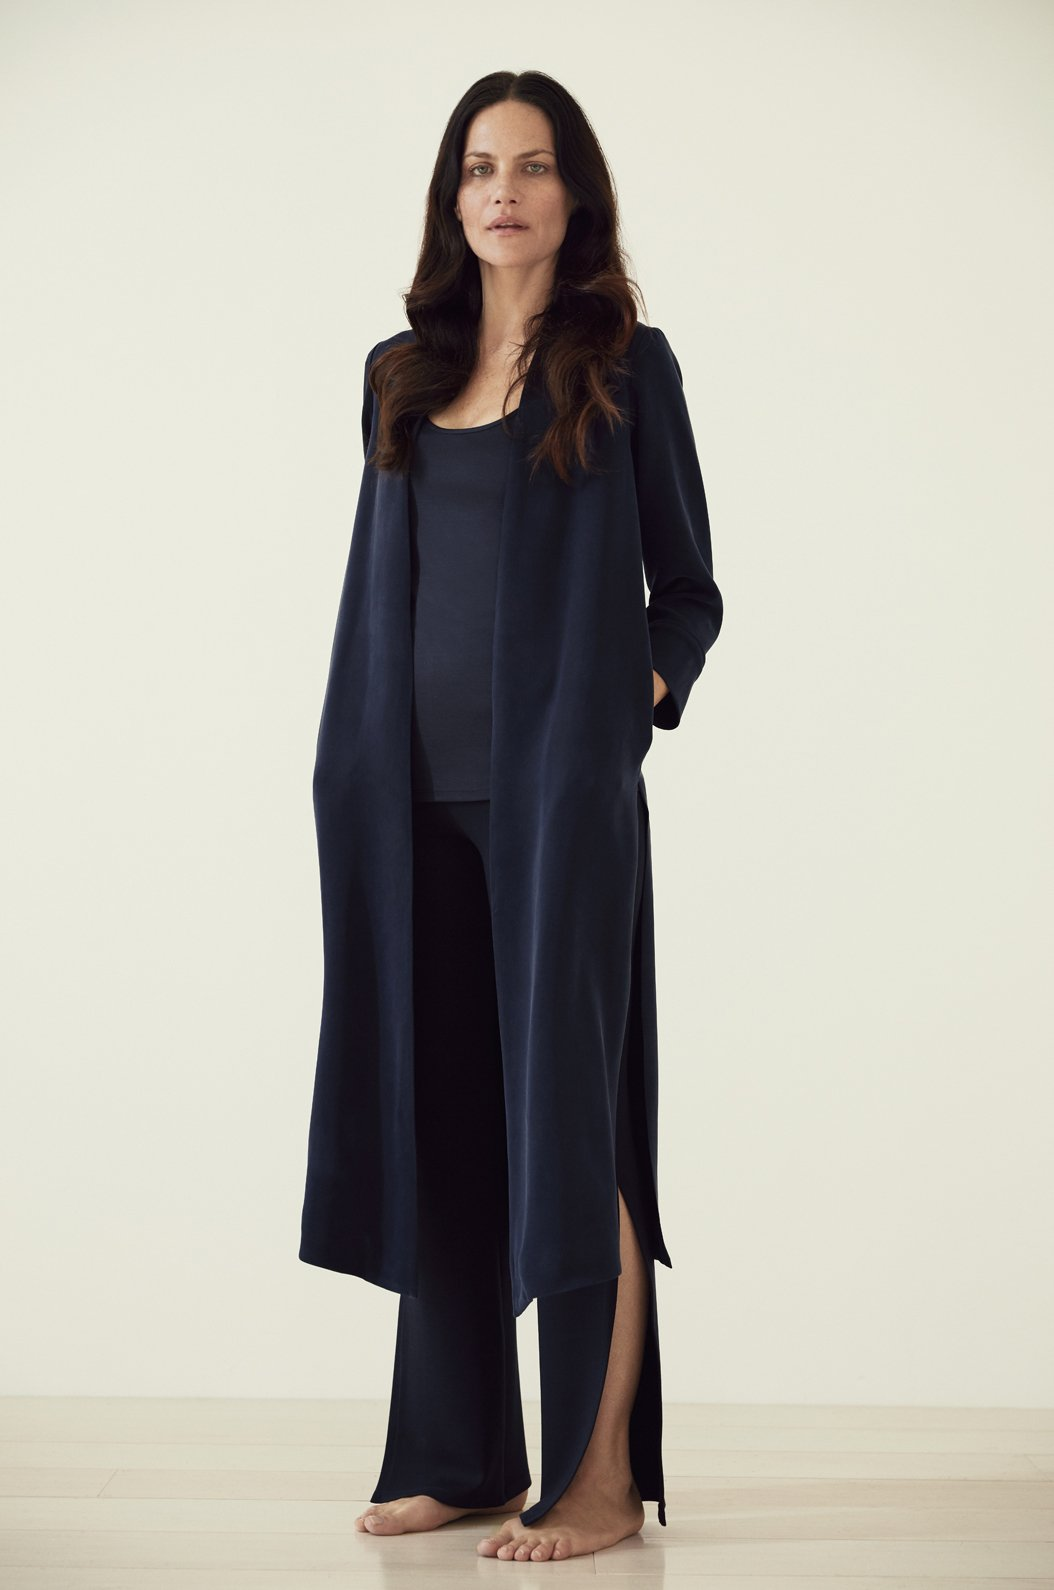 ROYL NYC | Luxury loungewear - LUXE CREPE SILK DUSTER | ROYL